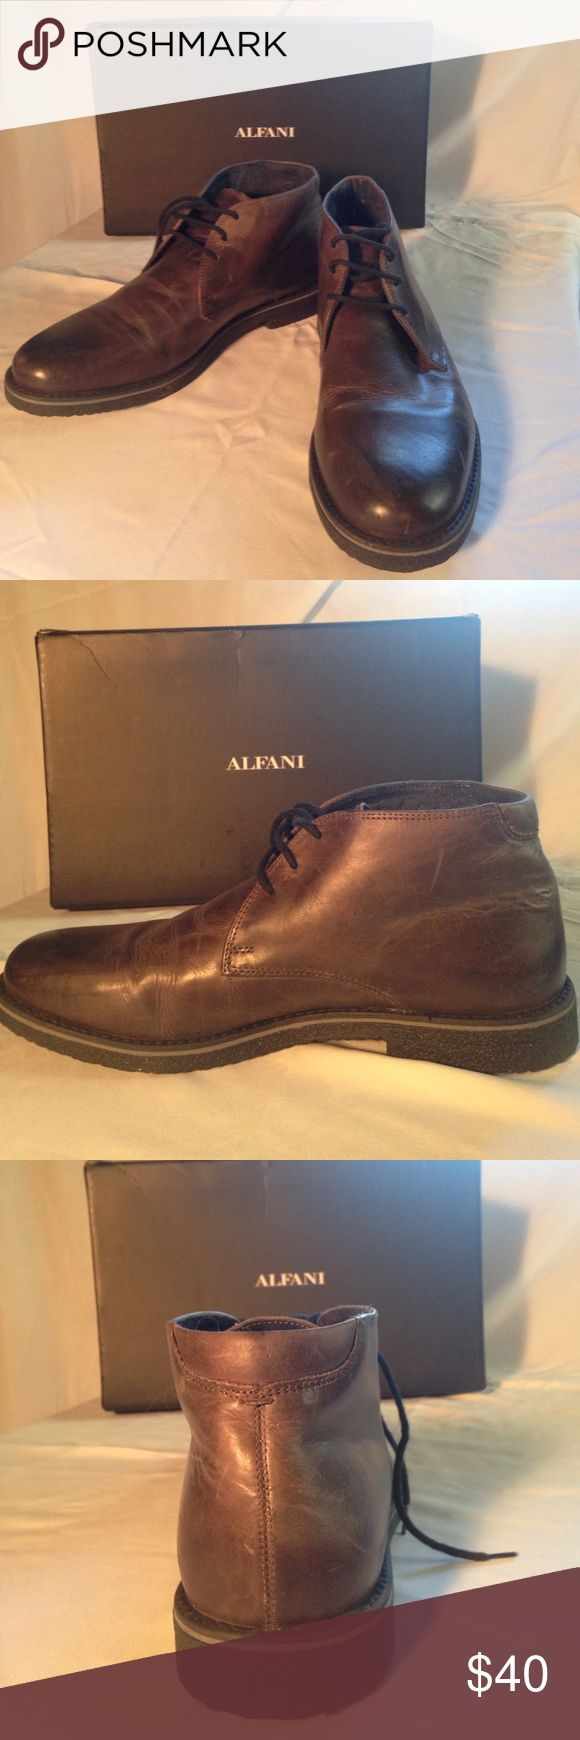 Alfani Men's Lancer Leather Chukka Boots-brand new Alfani men's Lancer Leather lace up chukka boots. Box says gray but is more of a cool dark brown. Never worn! Comes from non smoking home. Alfani Shoes Chukka Boots